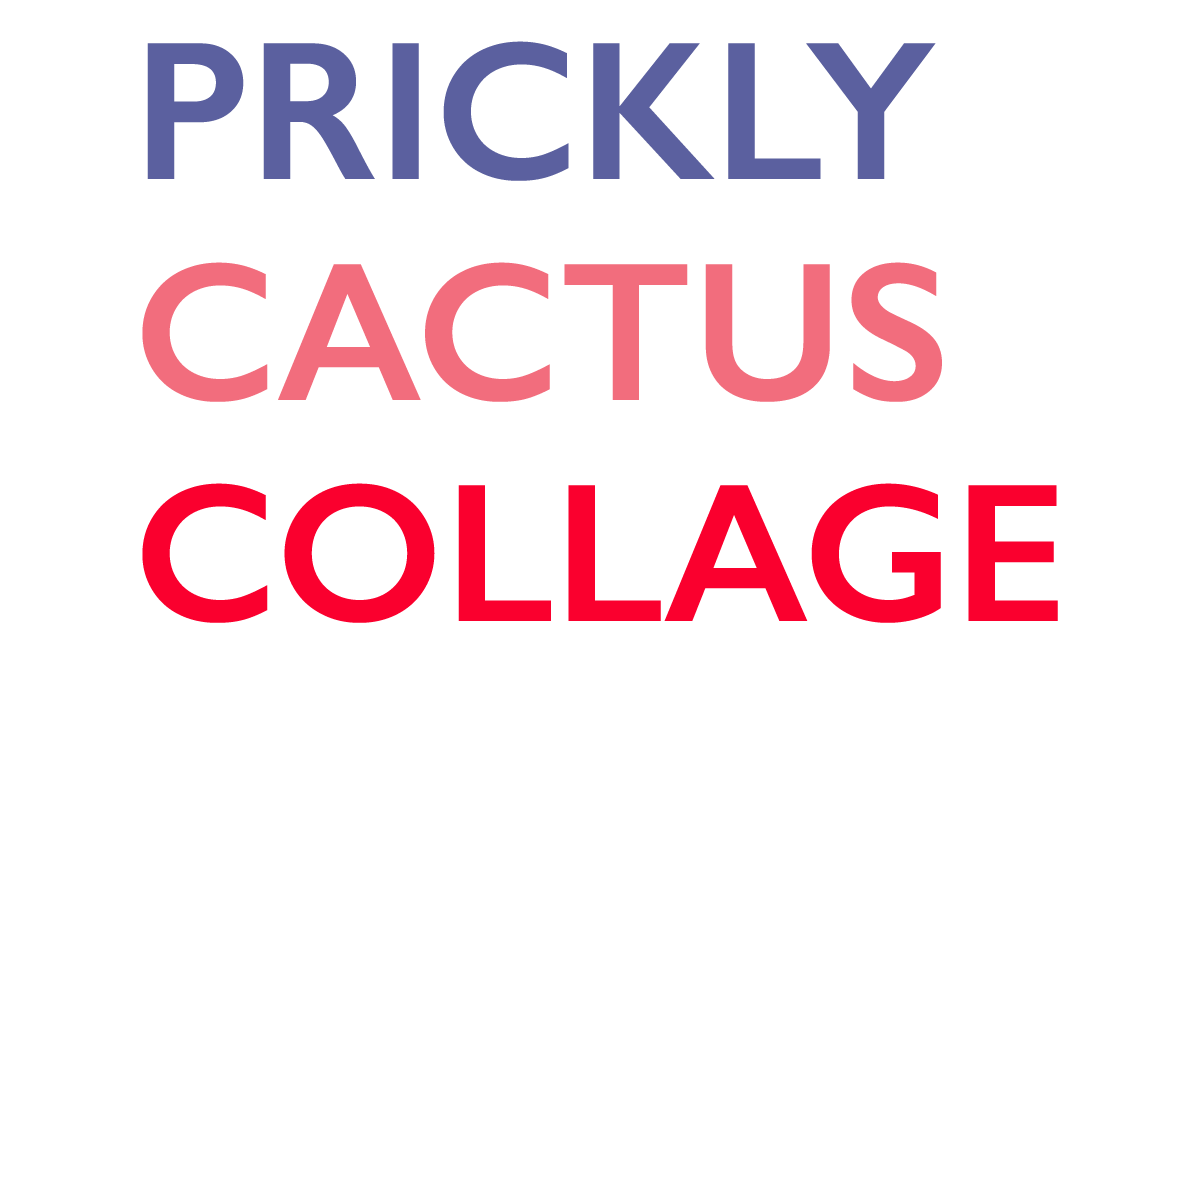 Prickly Cactus Collage